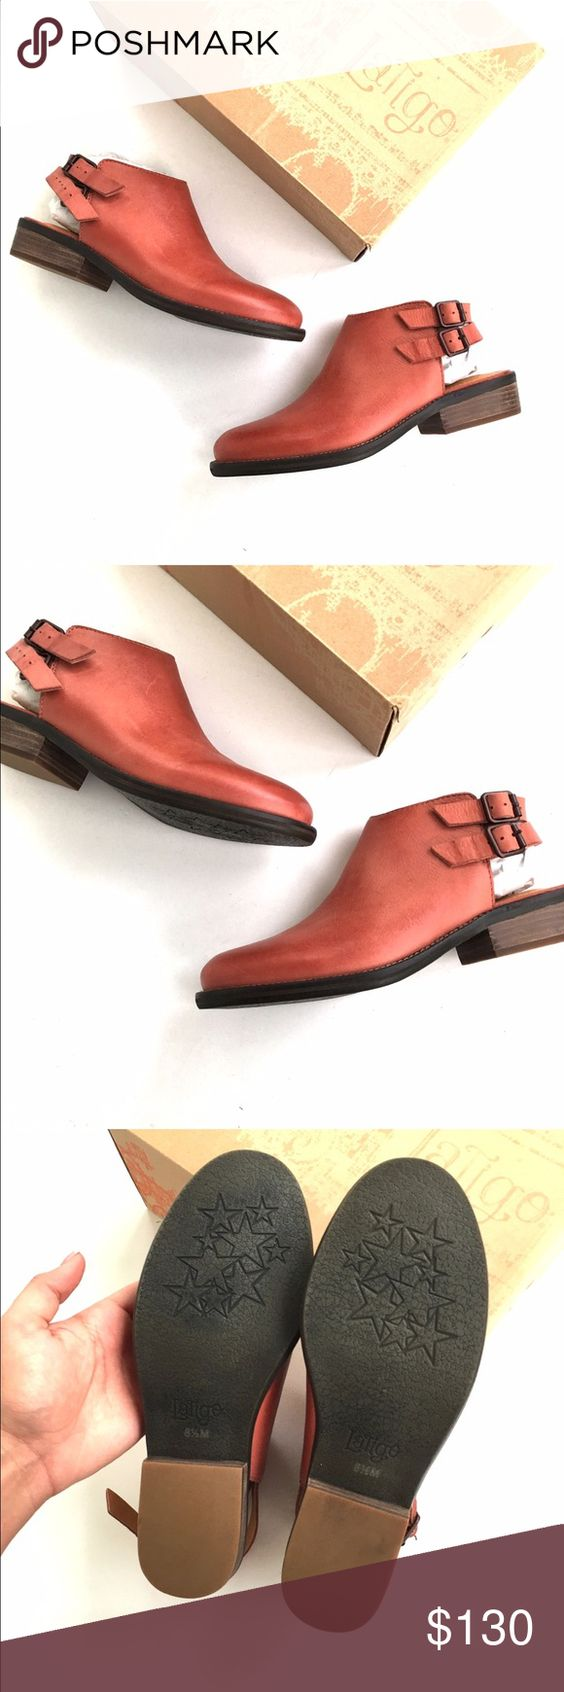 Anthro Latigo cognac buckle booties Brand new in box. Size 8.5. TTS from Anthro. Brand is latigo retail $165    •no trades•no offsite transactions•no low balls•offers considered through the offer feature only!•save when you bundle• Anthropologie Shoes Ankle Boots & Booties